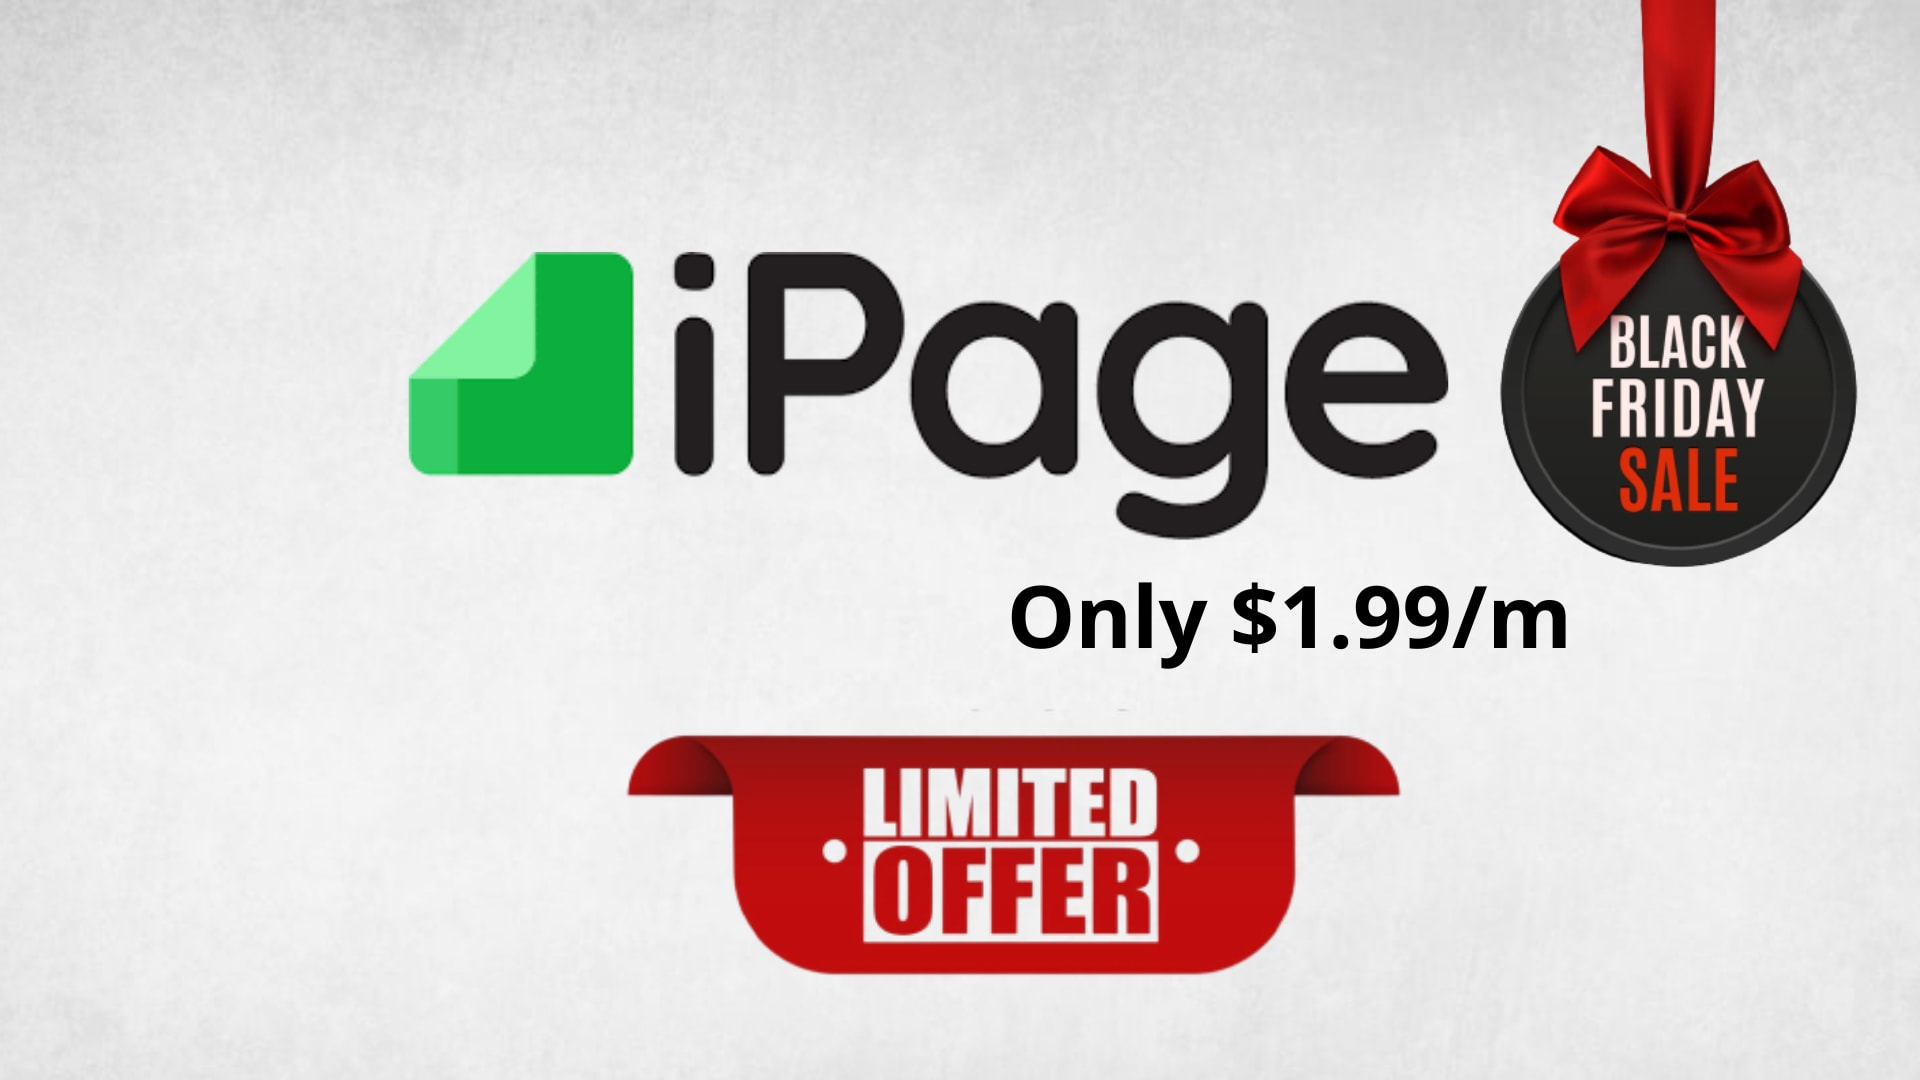 ipage black friday deals 2020 - Top 10 Black Friday Hosting Deals 2020